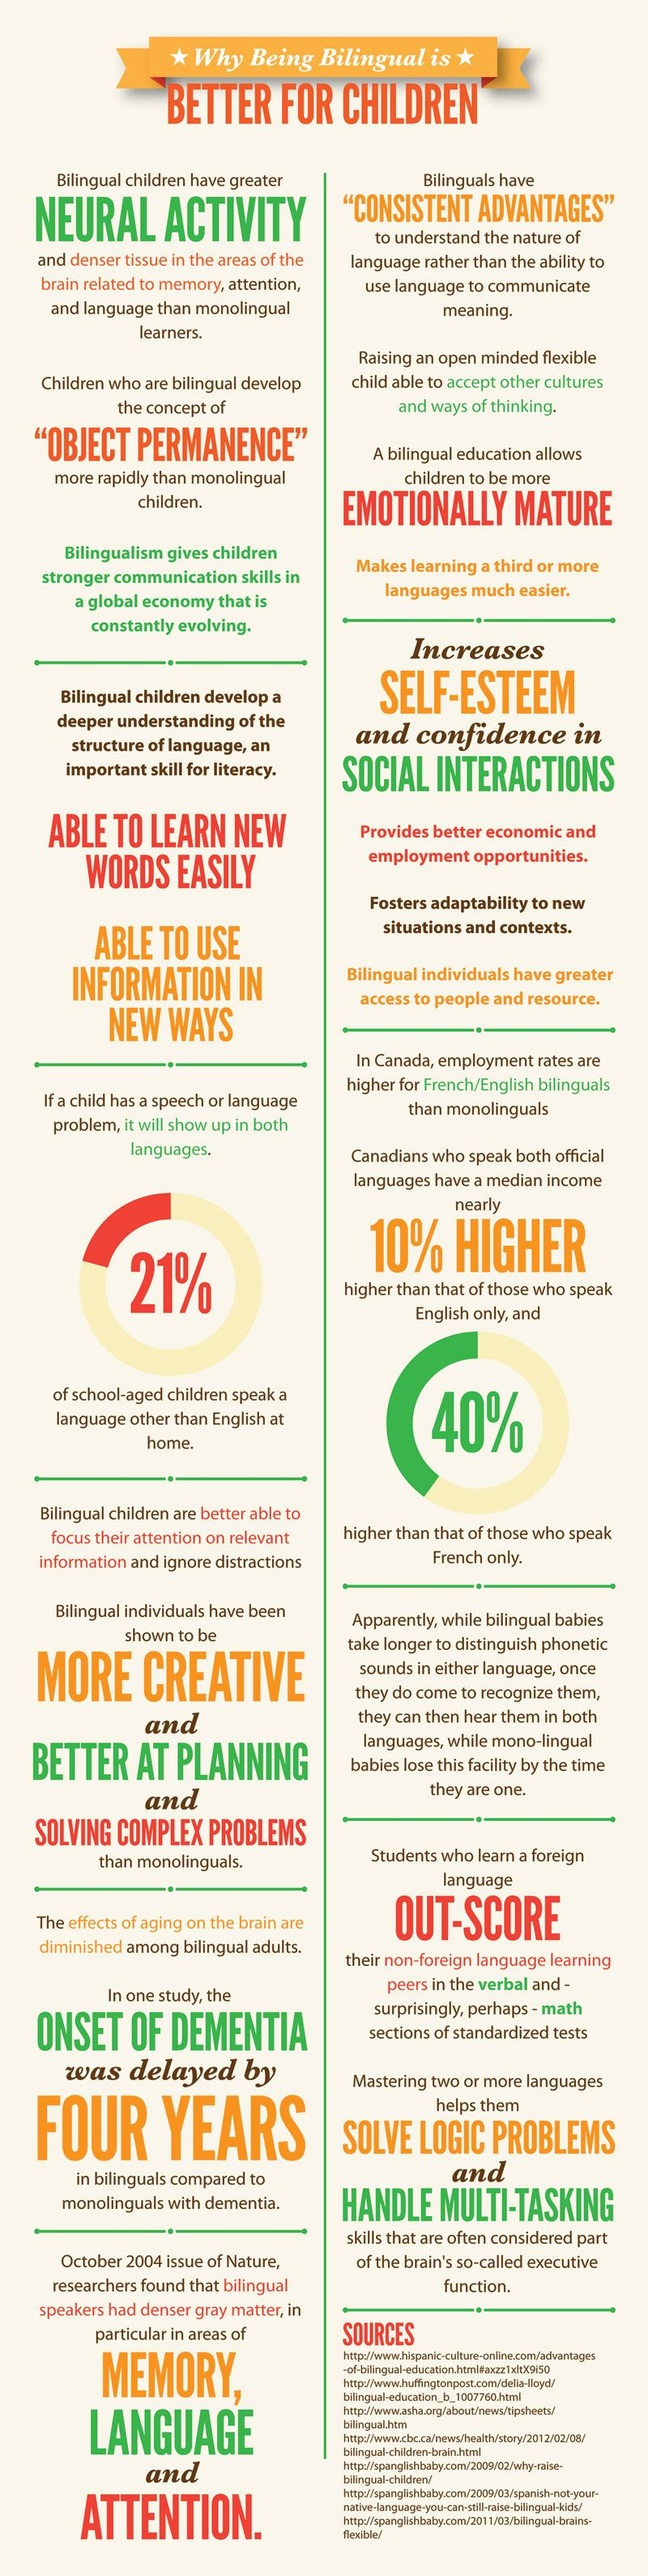 being bilingual essay best images about benefits of being  best images about being bilingual language 17 best images about being bilingual language languages to learn